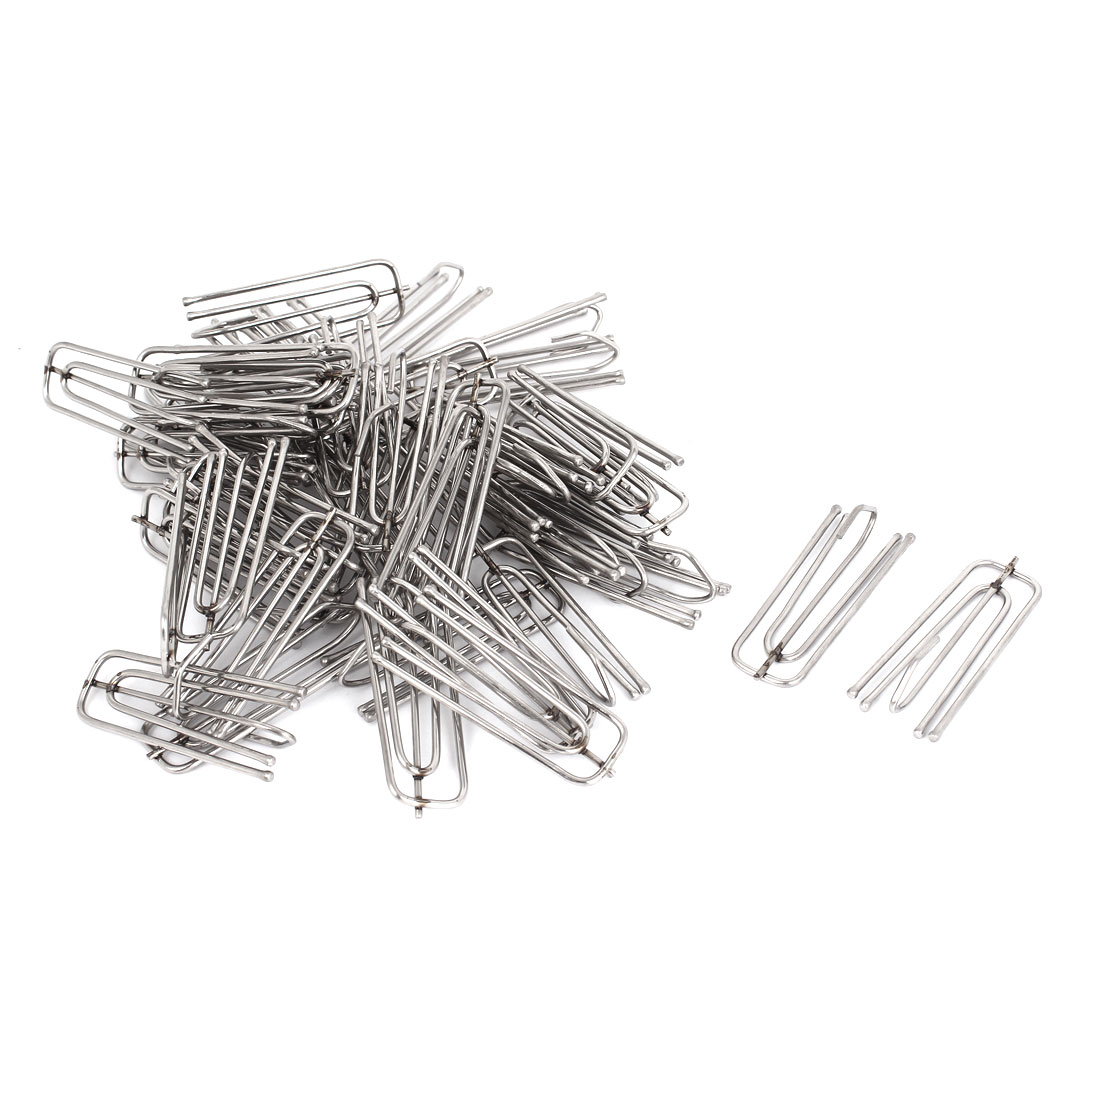 Window Treatment Stainless Steel 4 Prongs Pinch Pleat Drapes Curtain Hooks 50pcs by Unique-Bargains